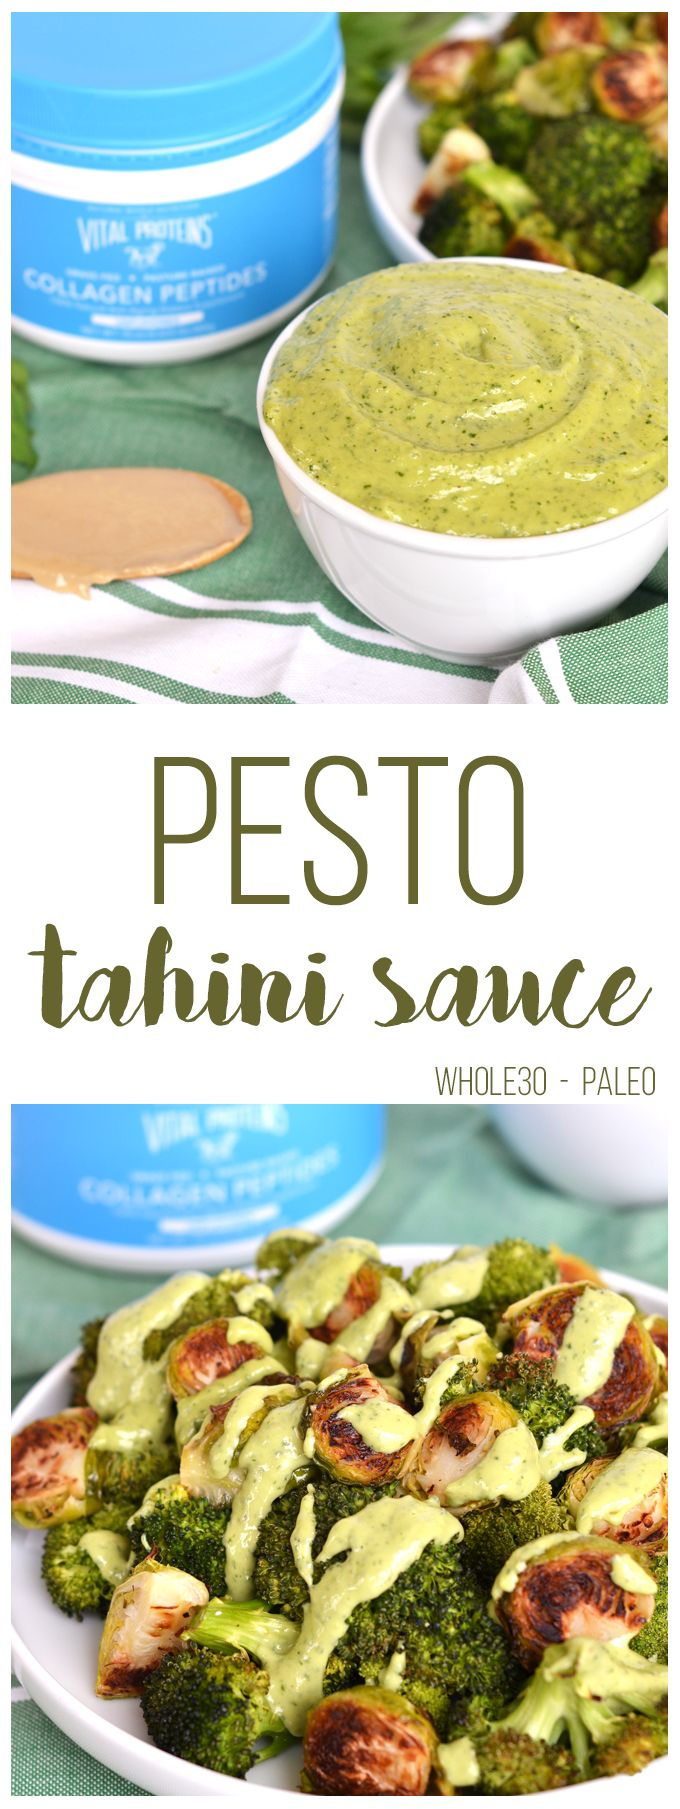 This Pesto Tahini Sauce is Whole30 & Paleo - perfect to top on veggies, meat or use as a dip. It is also packed with Collagen for an extra protein boost!